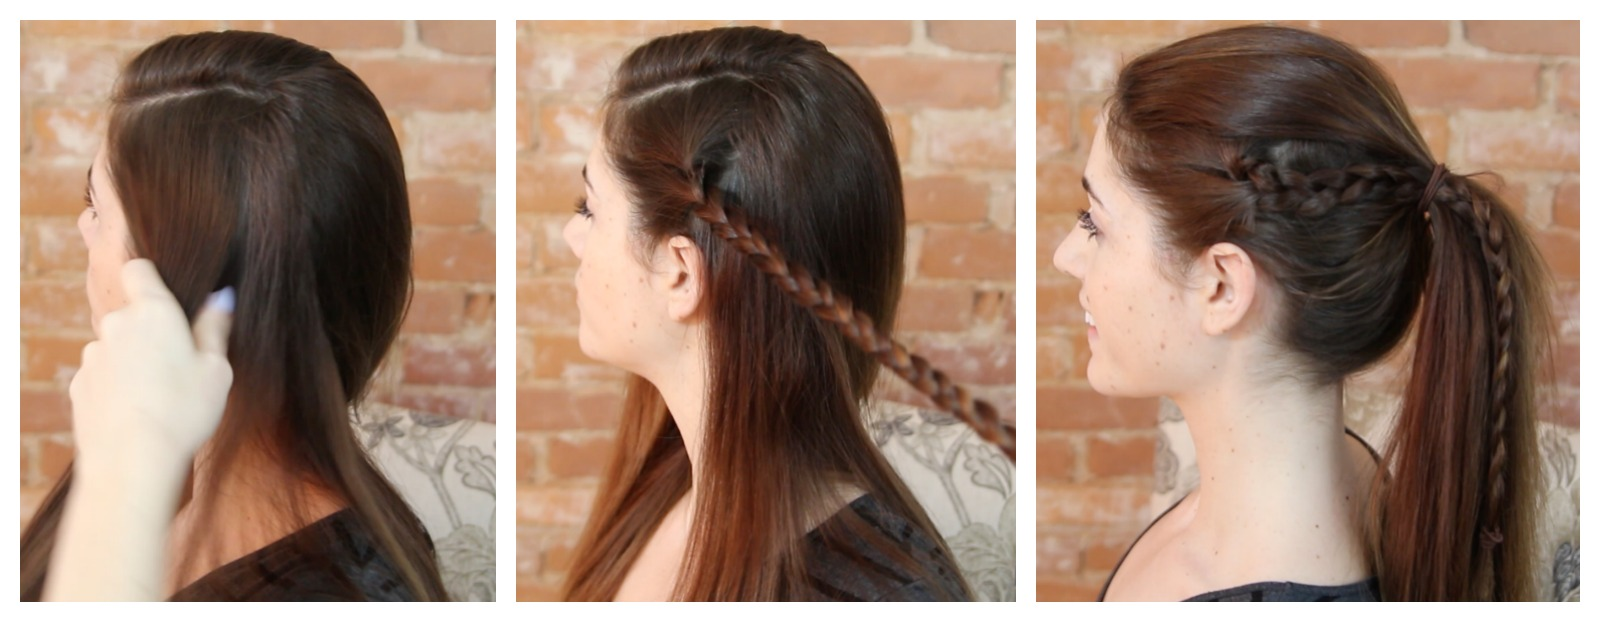 Different Ponytail Ideas - Braided Ponytail How To